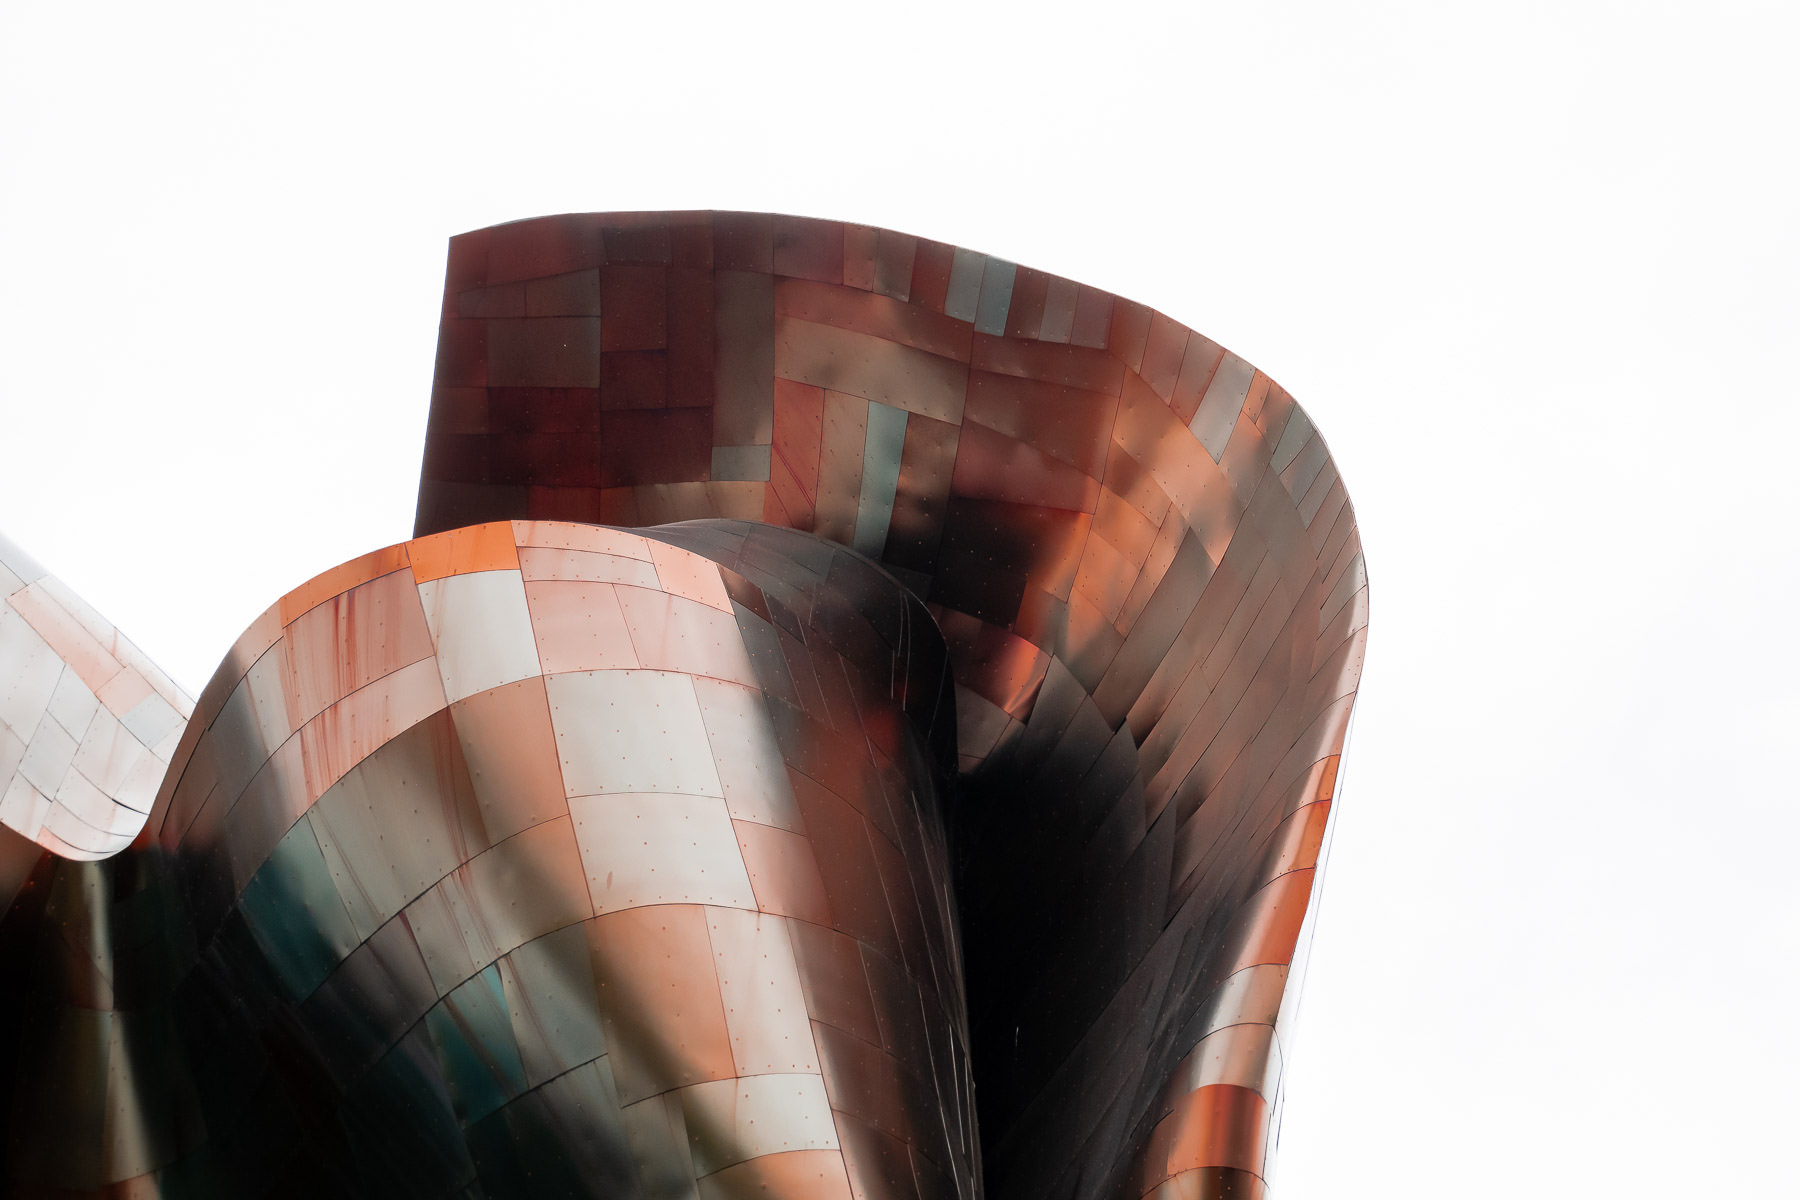 Architectural detail of Seattle's Museum of Pop Culture by architect Frank Gehry.